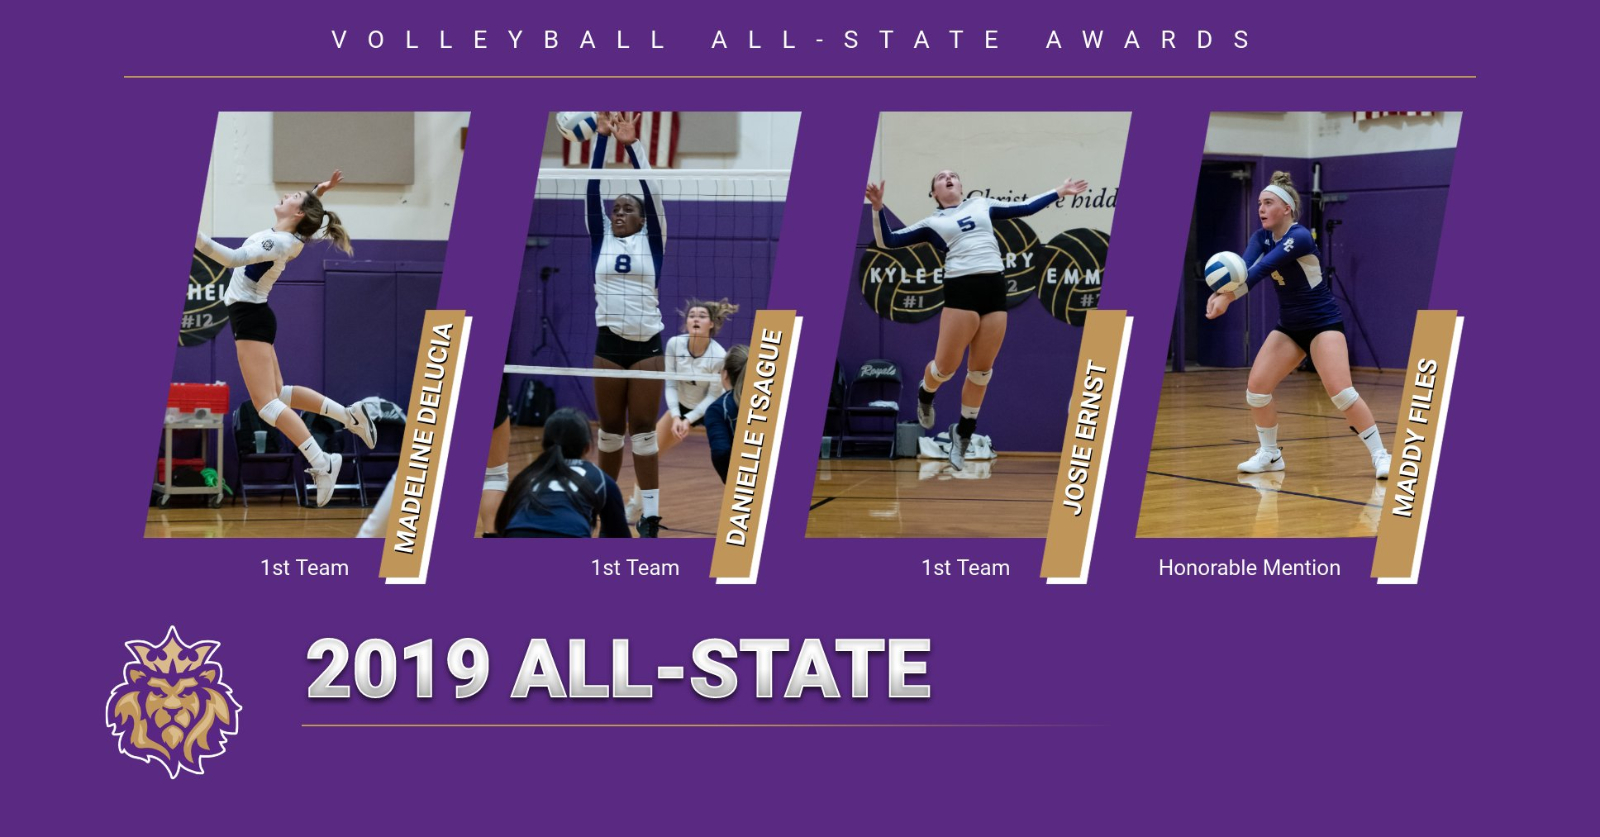 Volleyball All-State Award